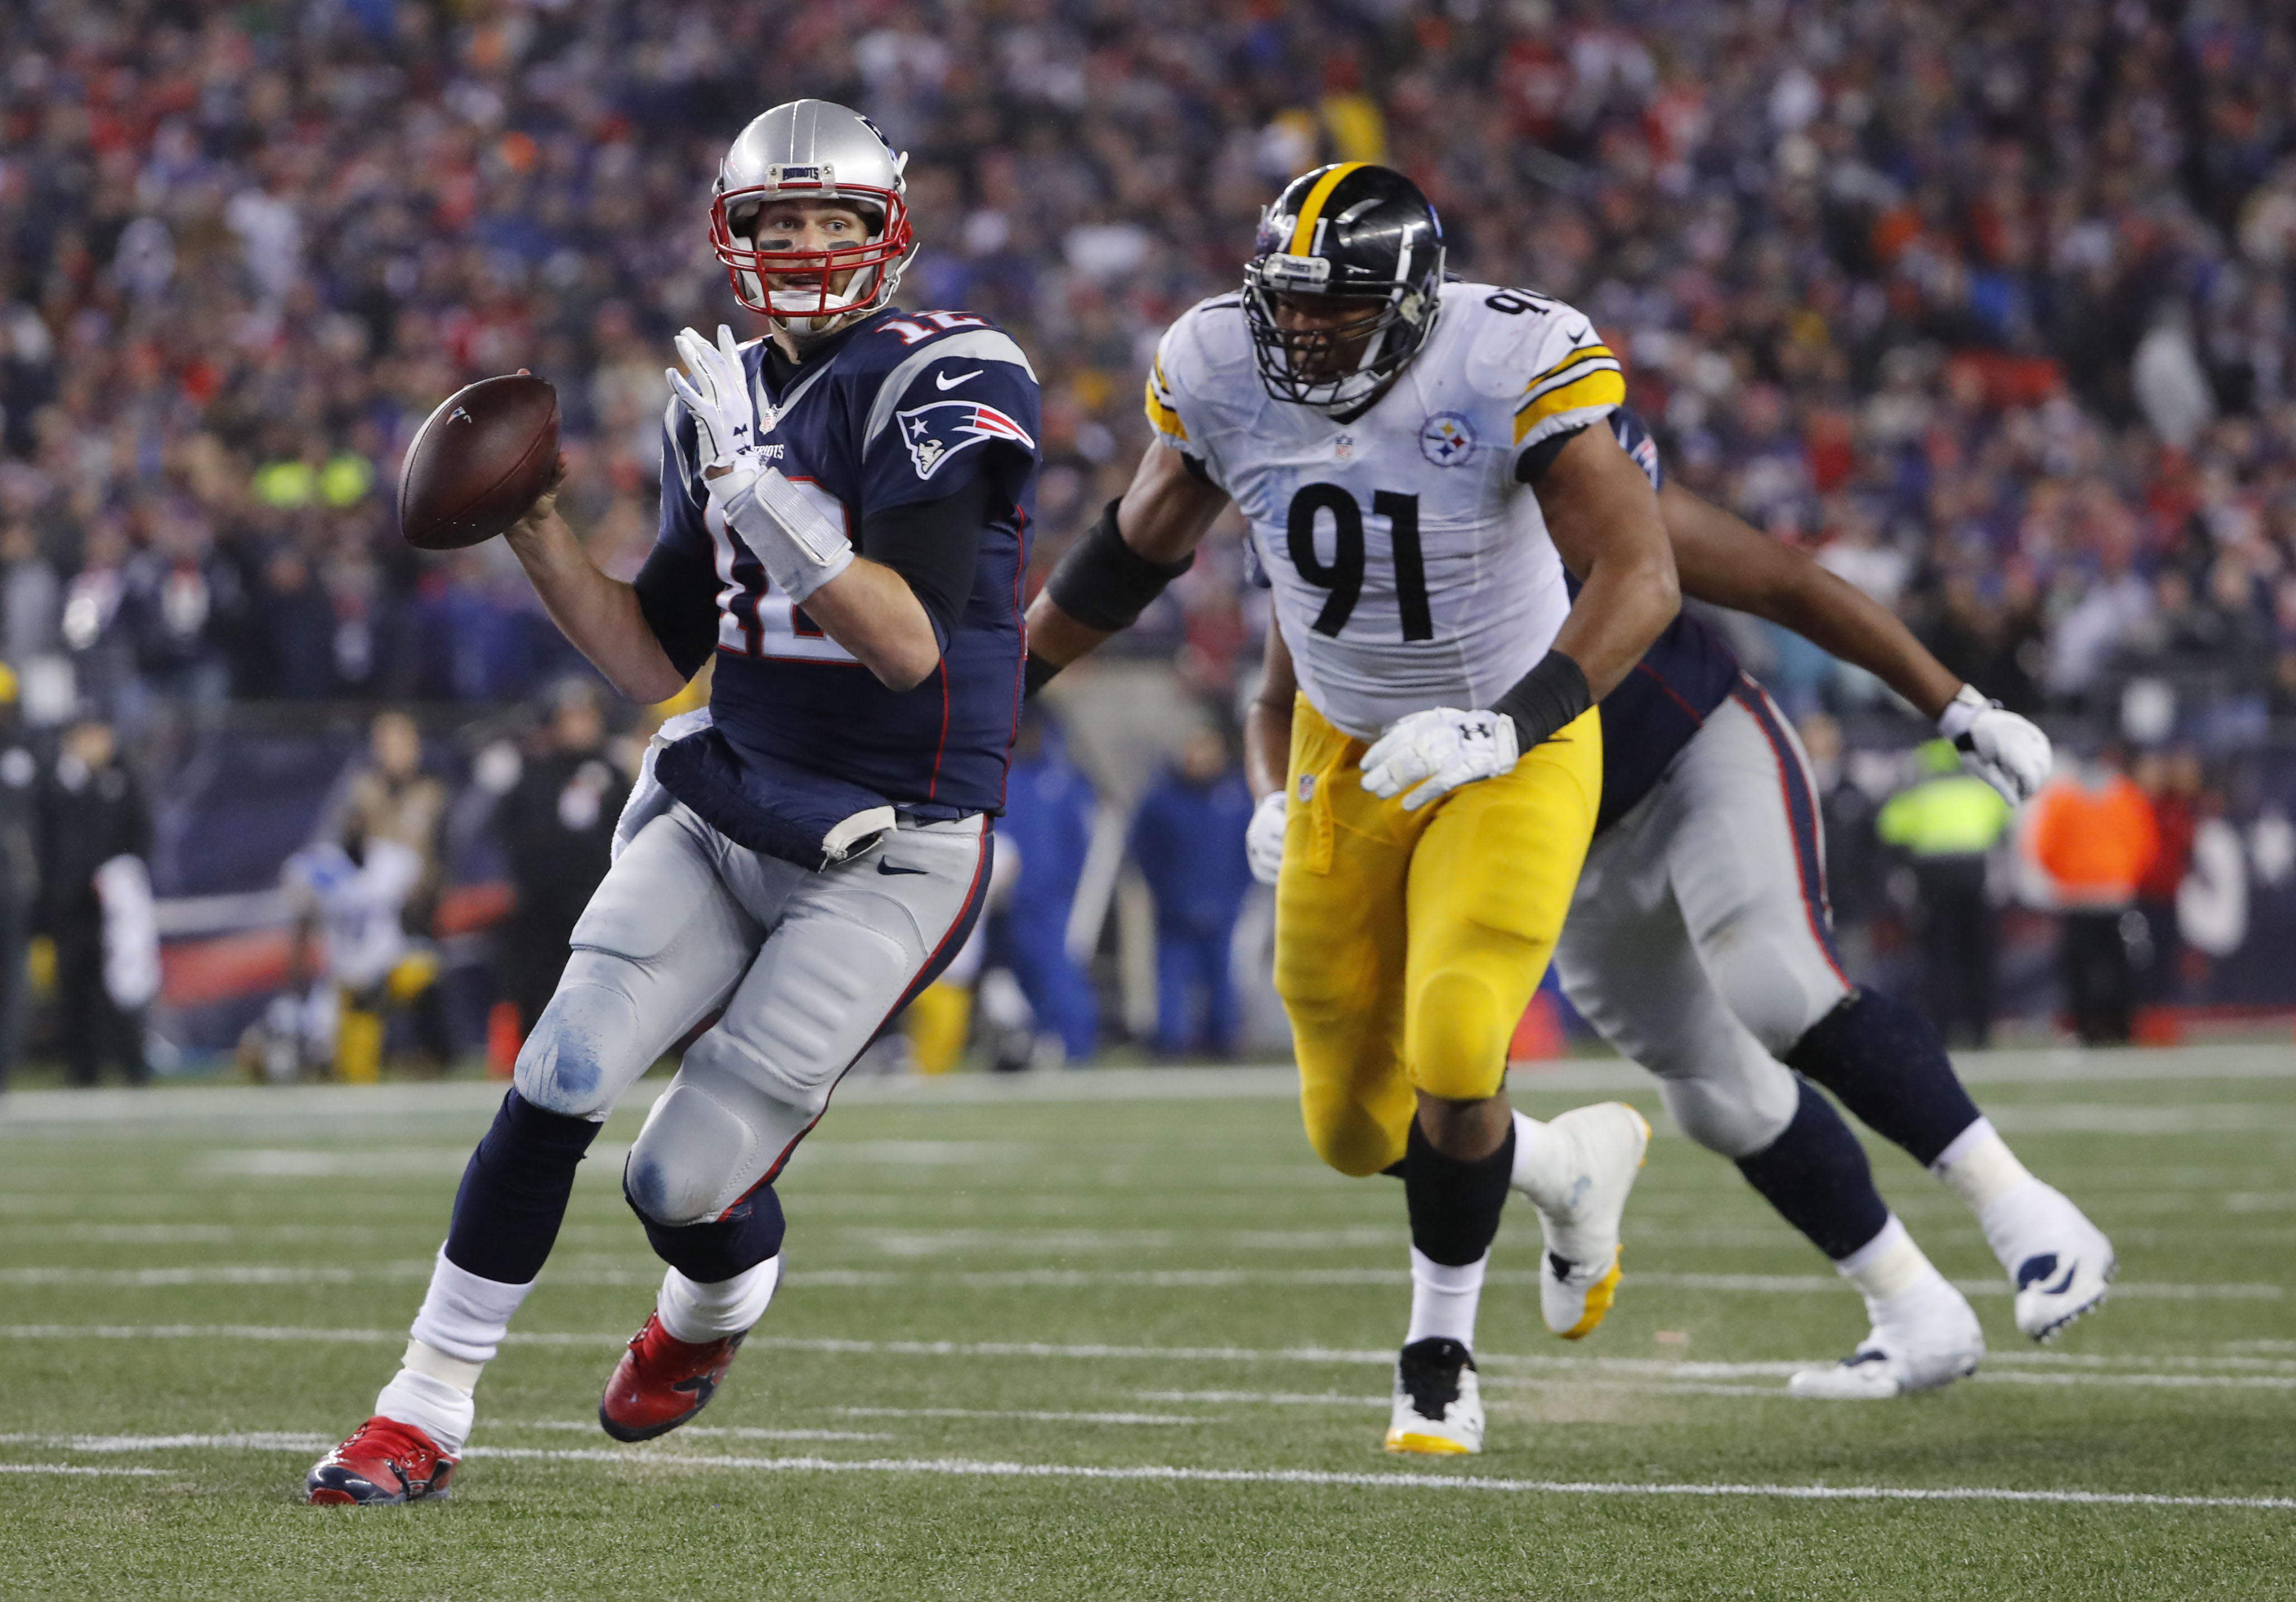 9832973-nfl-afc-championship-pittsburgh-steelers-at-new-england-patriots